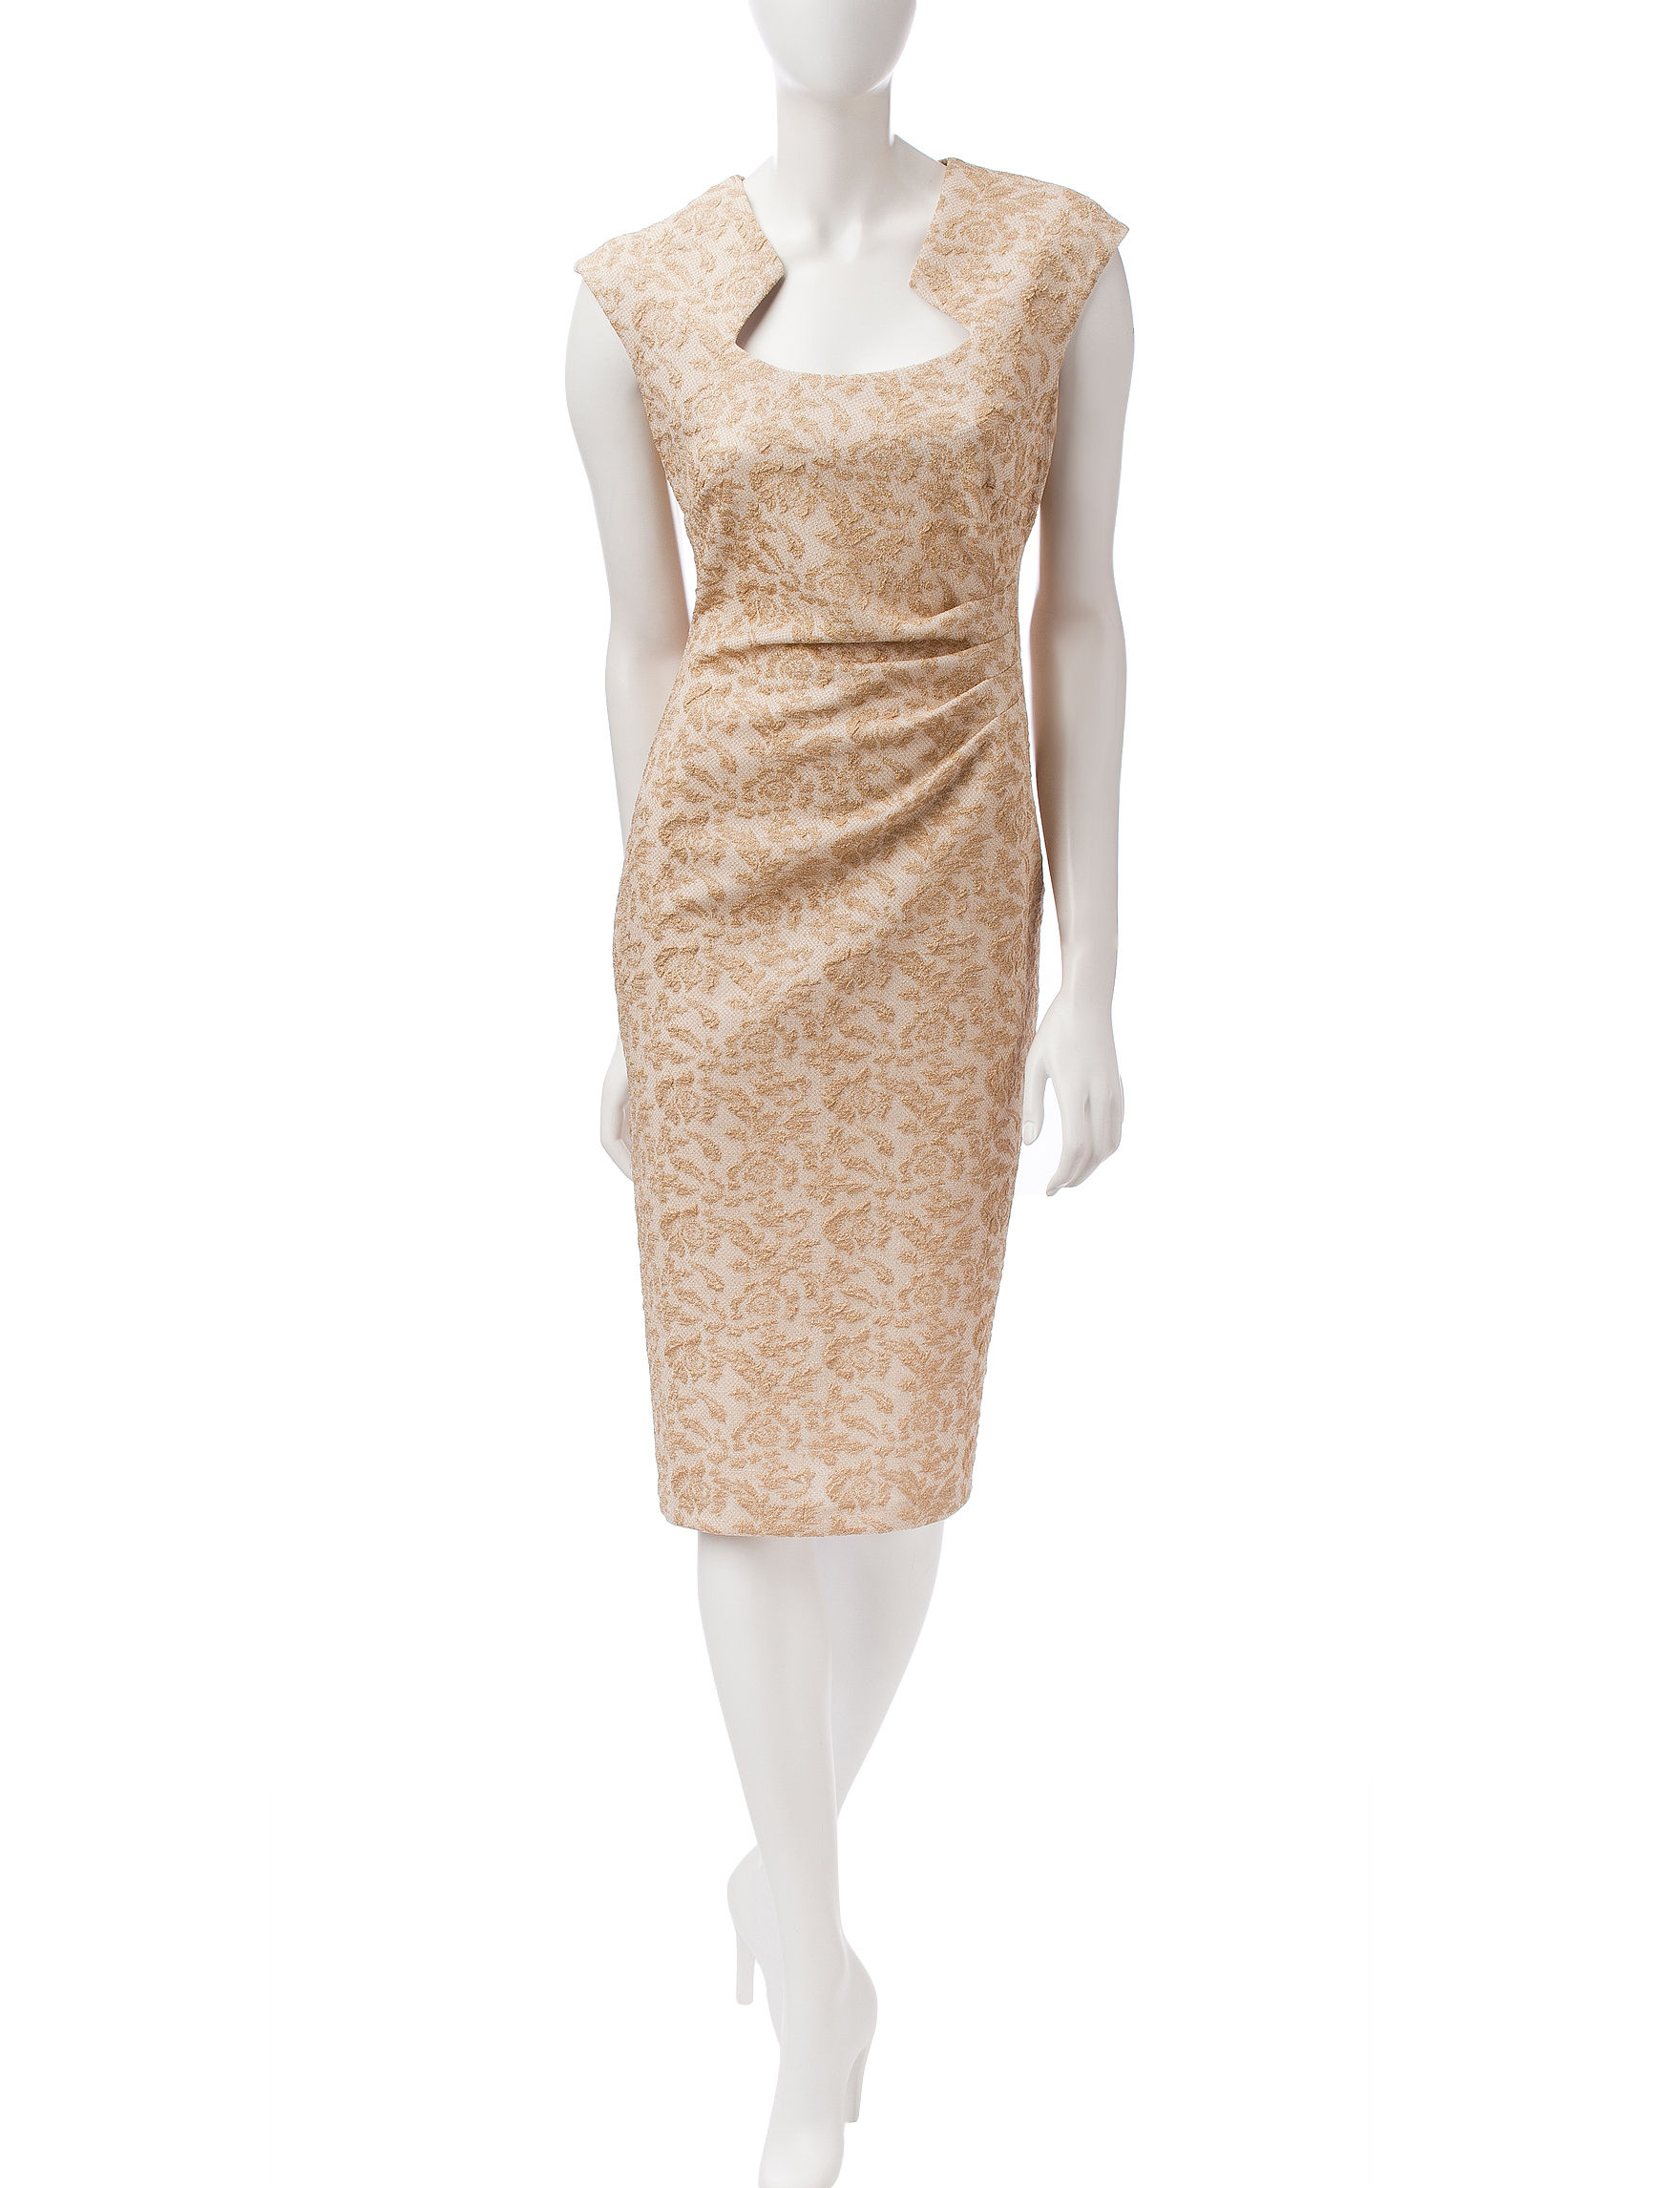 Connected Champagne Cocktail & Party Evening & Formal Sheath Dresses